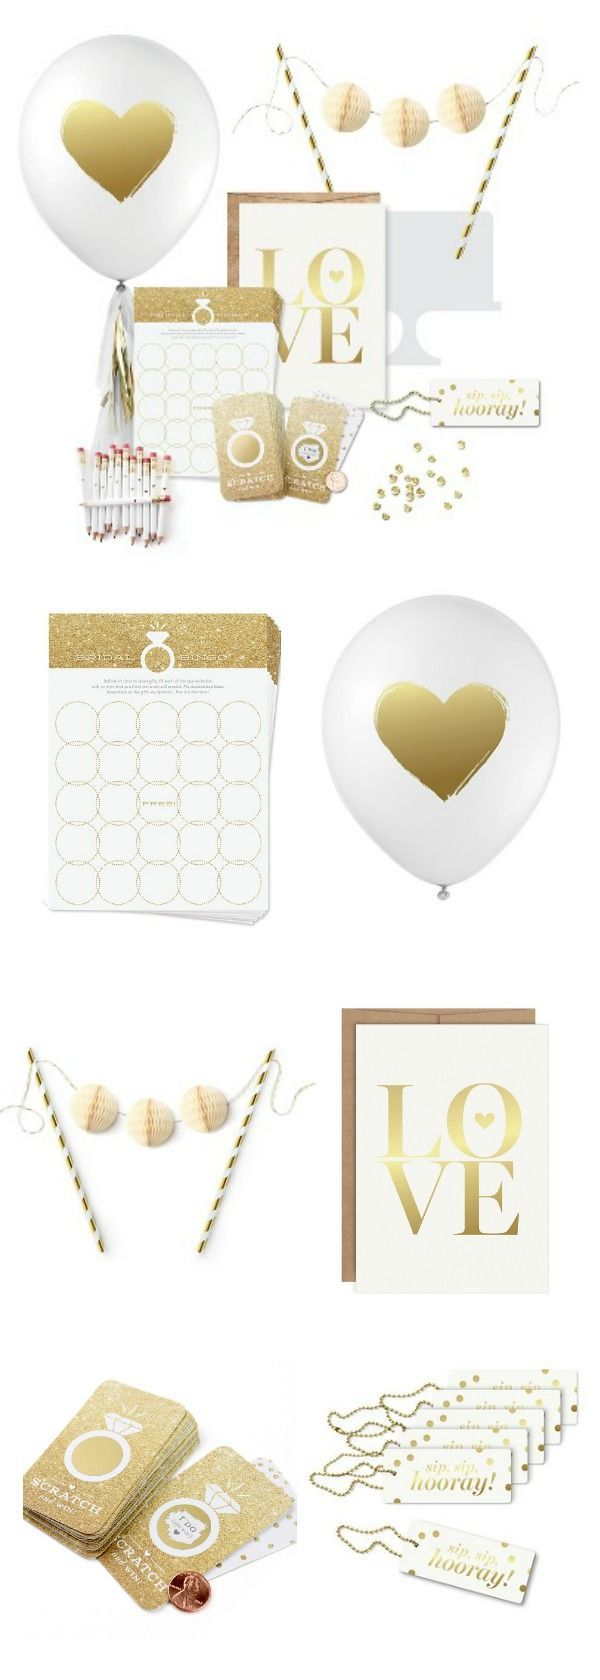 """Inklings Paperie®️ Gold Bridal Shower Collection No celebration is complete without balloons! This sweet set of 12 designer balloons by Inklings Paperie is printed in gold metallic ink on white biodegradable latex. Balloons are made in the USA with biodegradable latex, and measure 12"""" when inflated. #affiliate #target #bridalshower #partydecor #wedding #bride"""